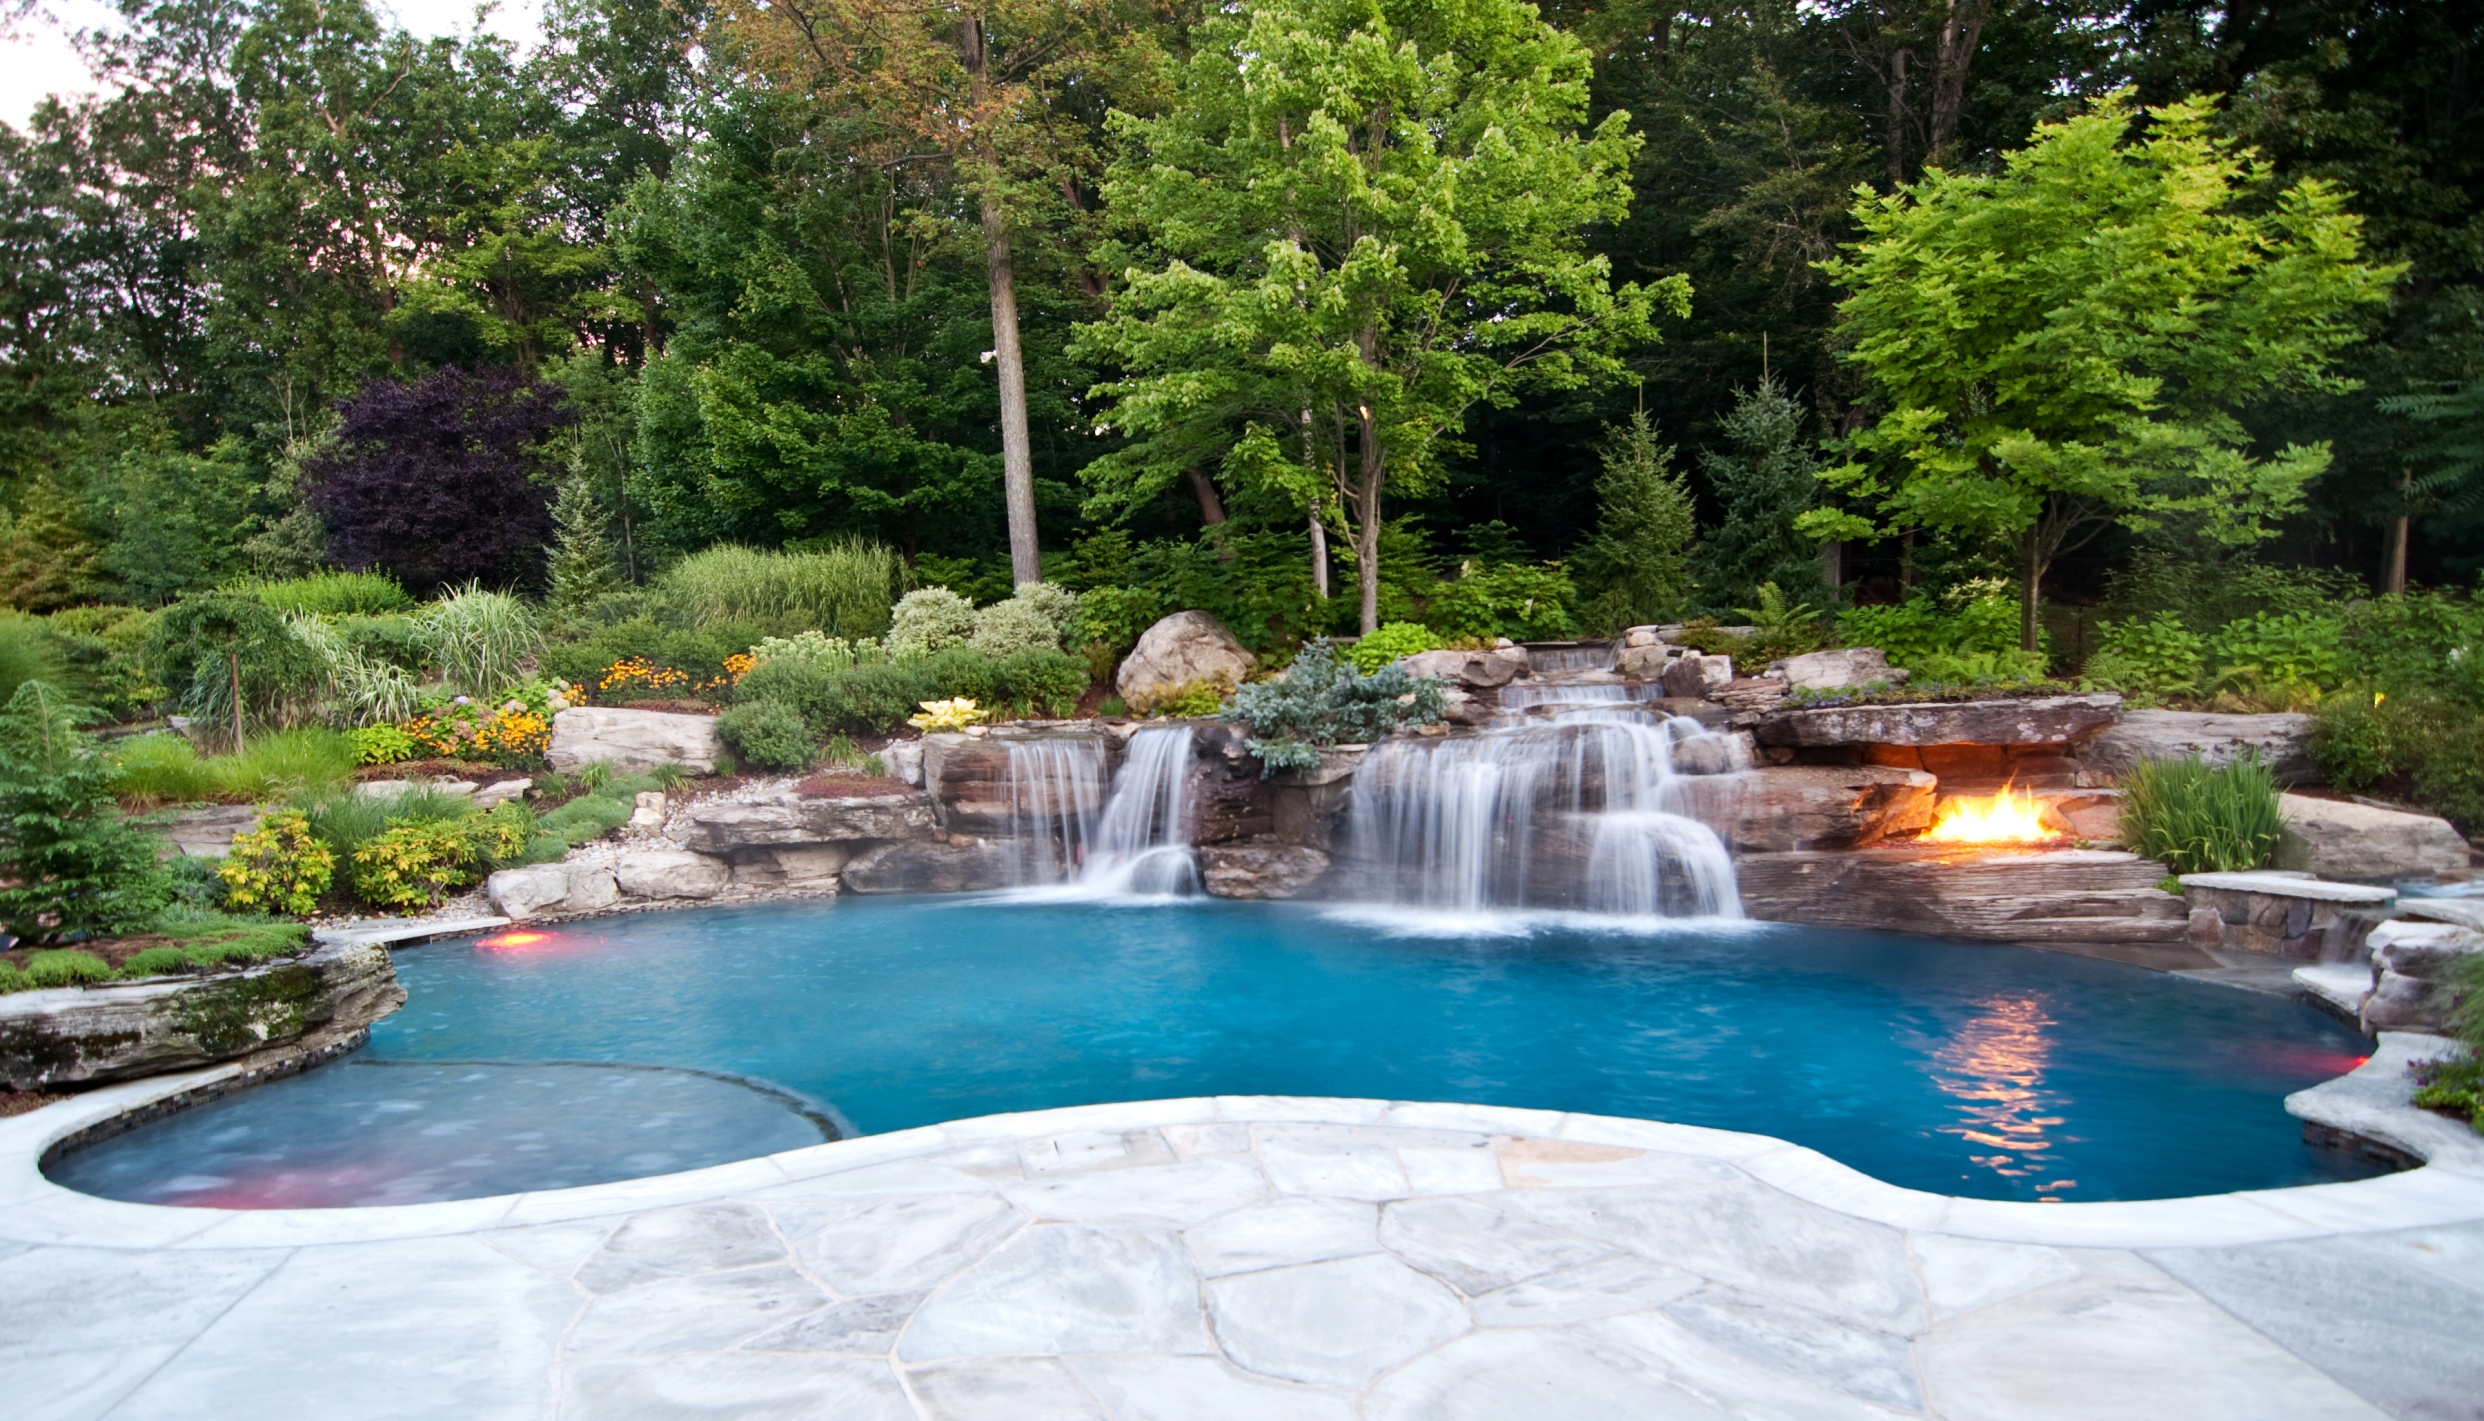 backyard designs with pool and outdoor kitchen - Outdoor Backyard Pools